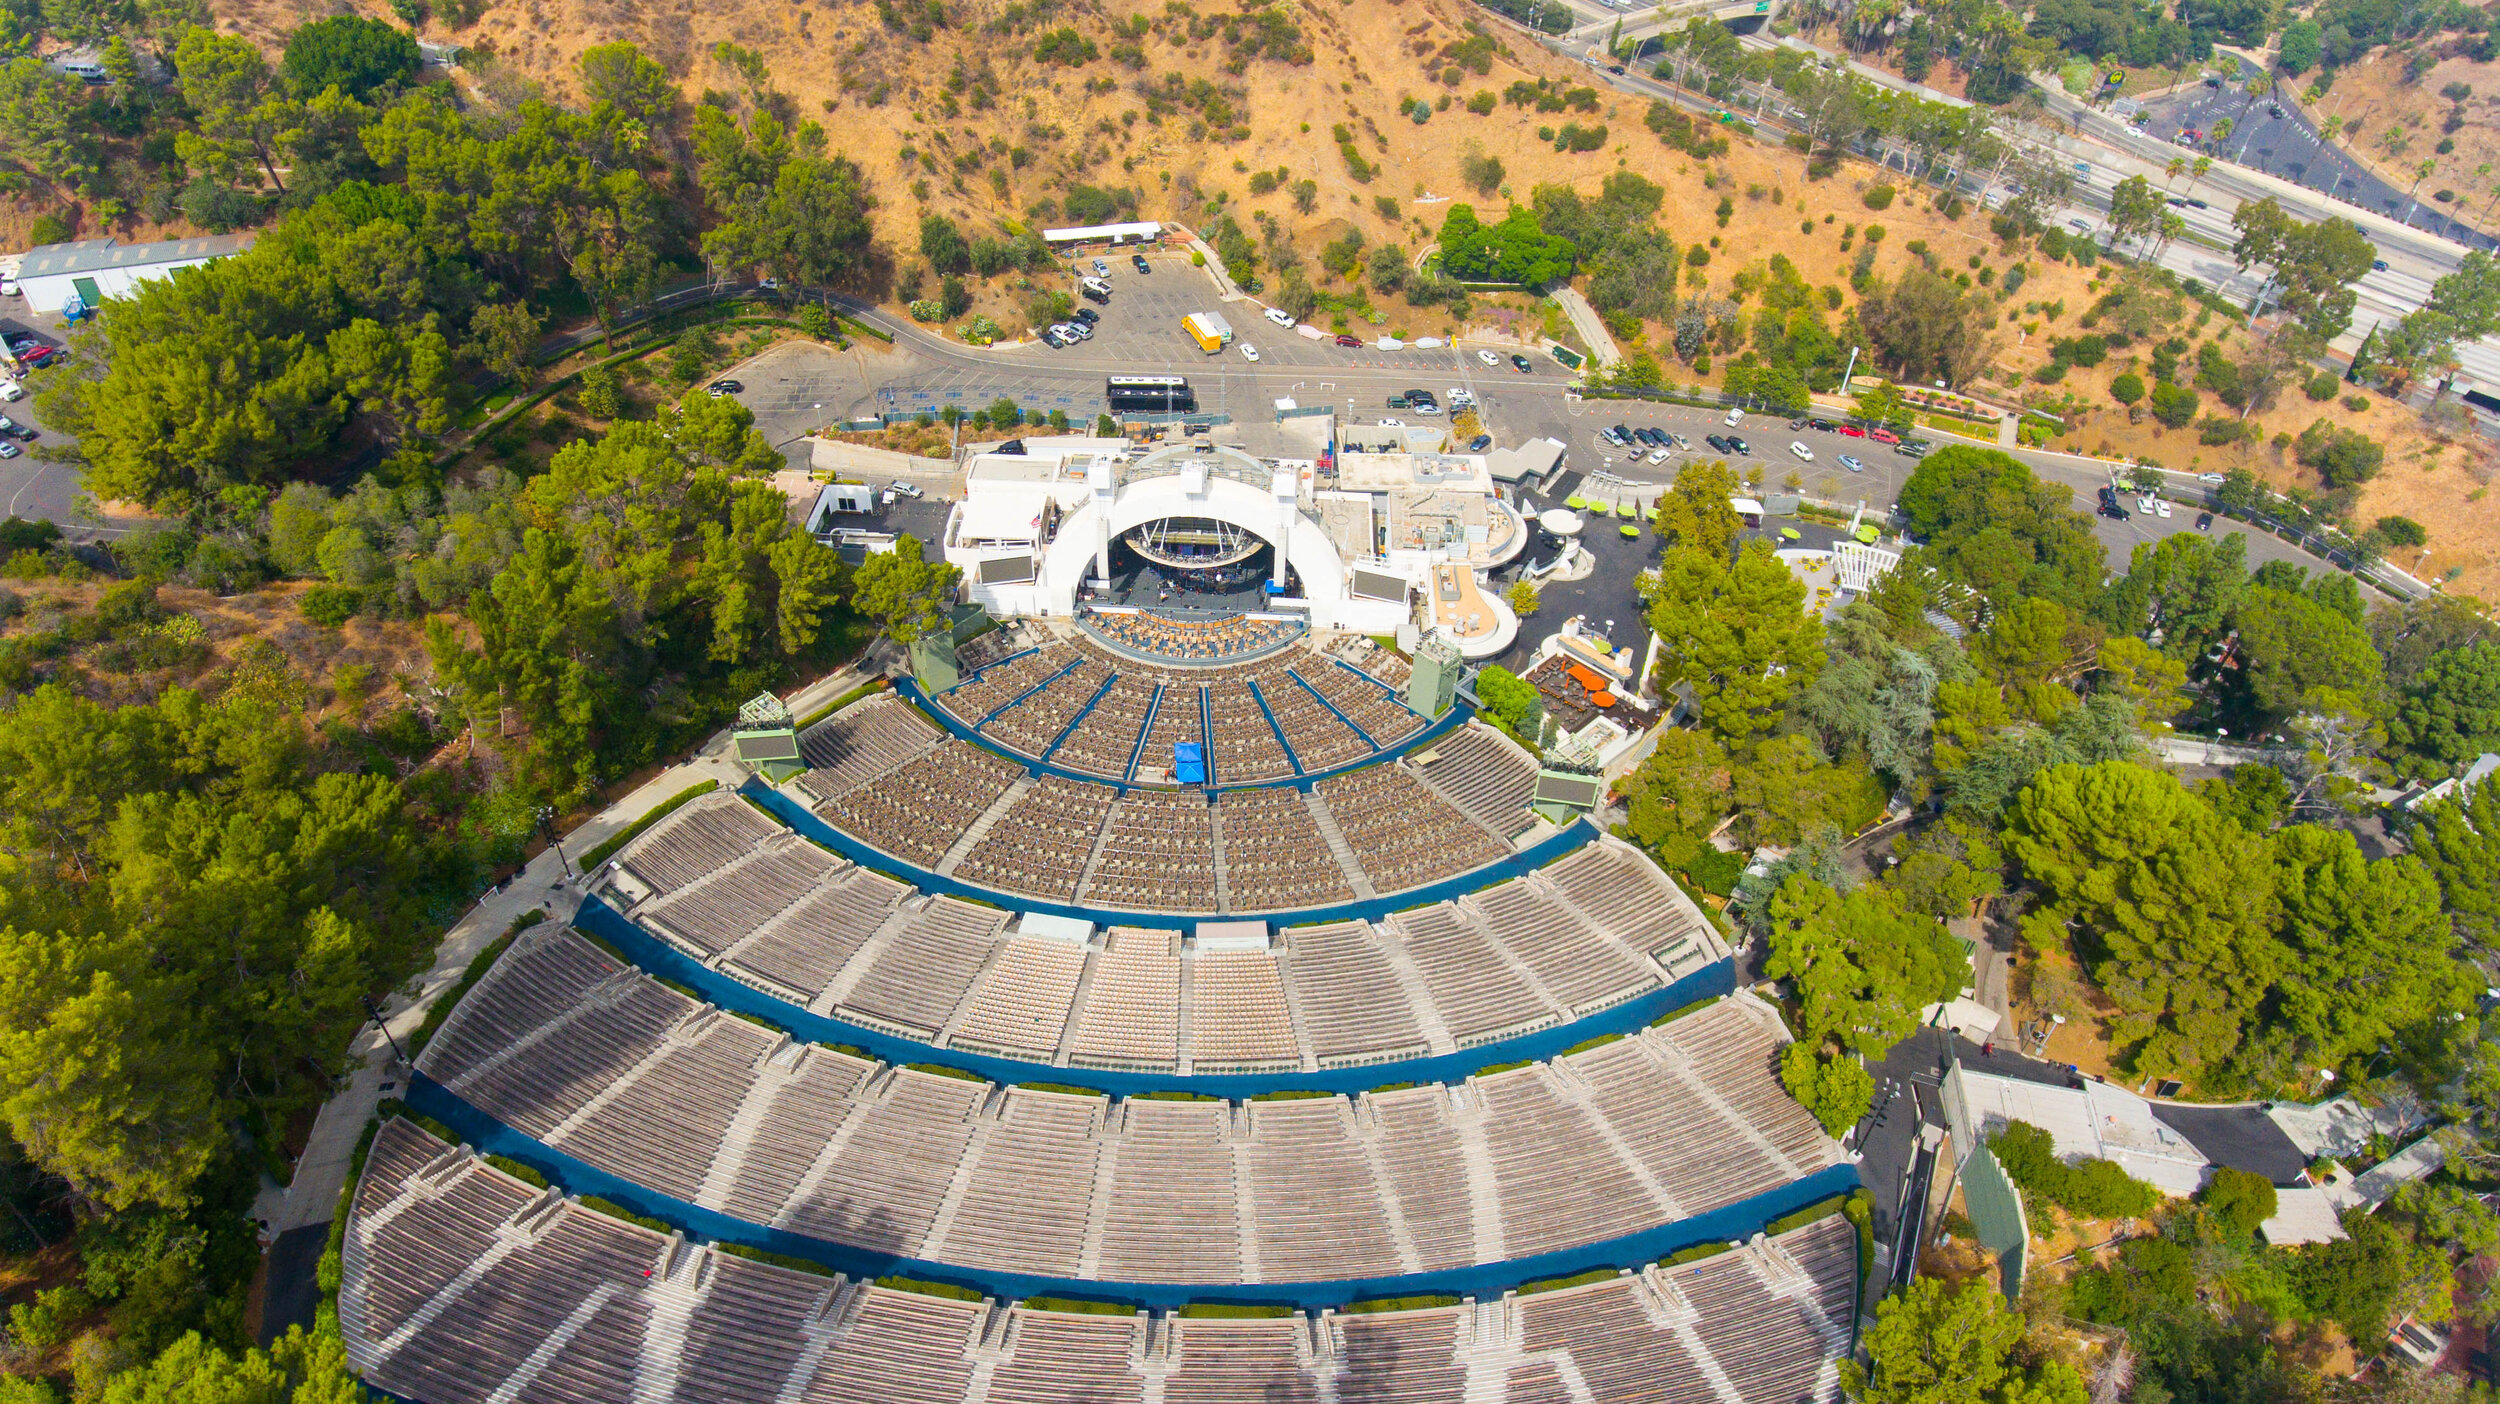 Ten minute walk to the Hollywood Bowl